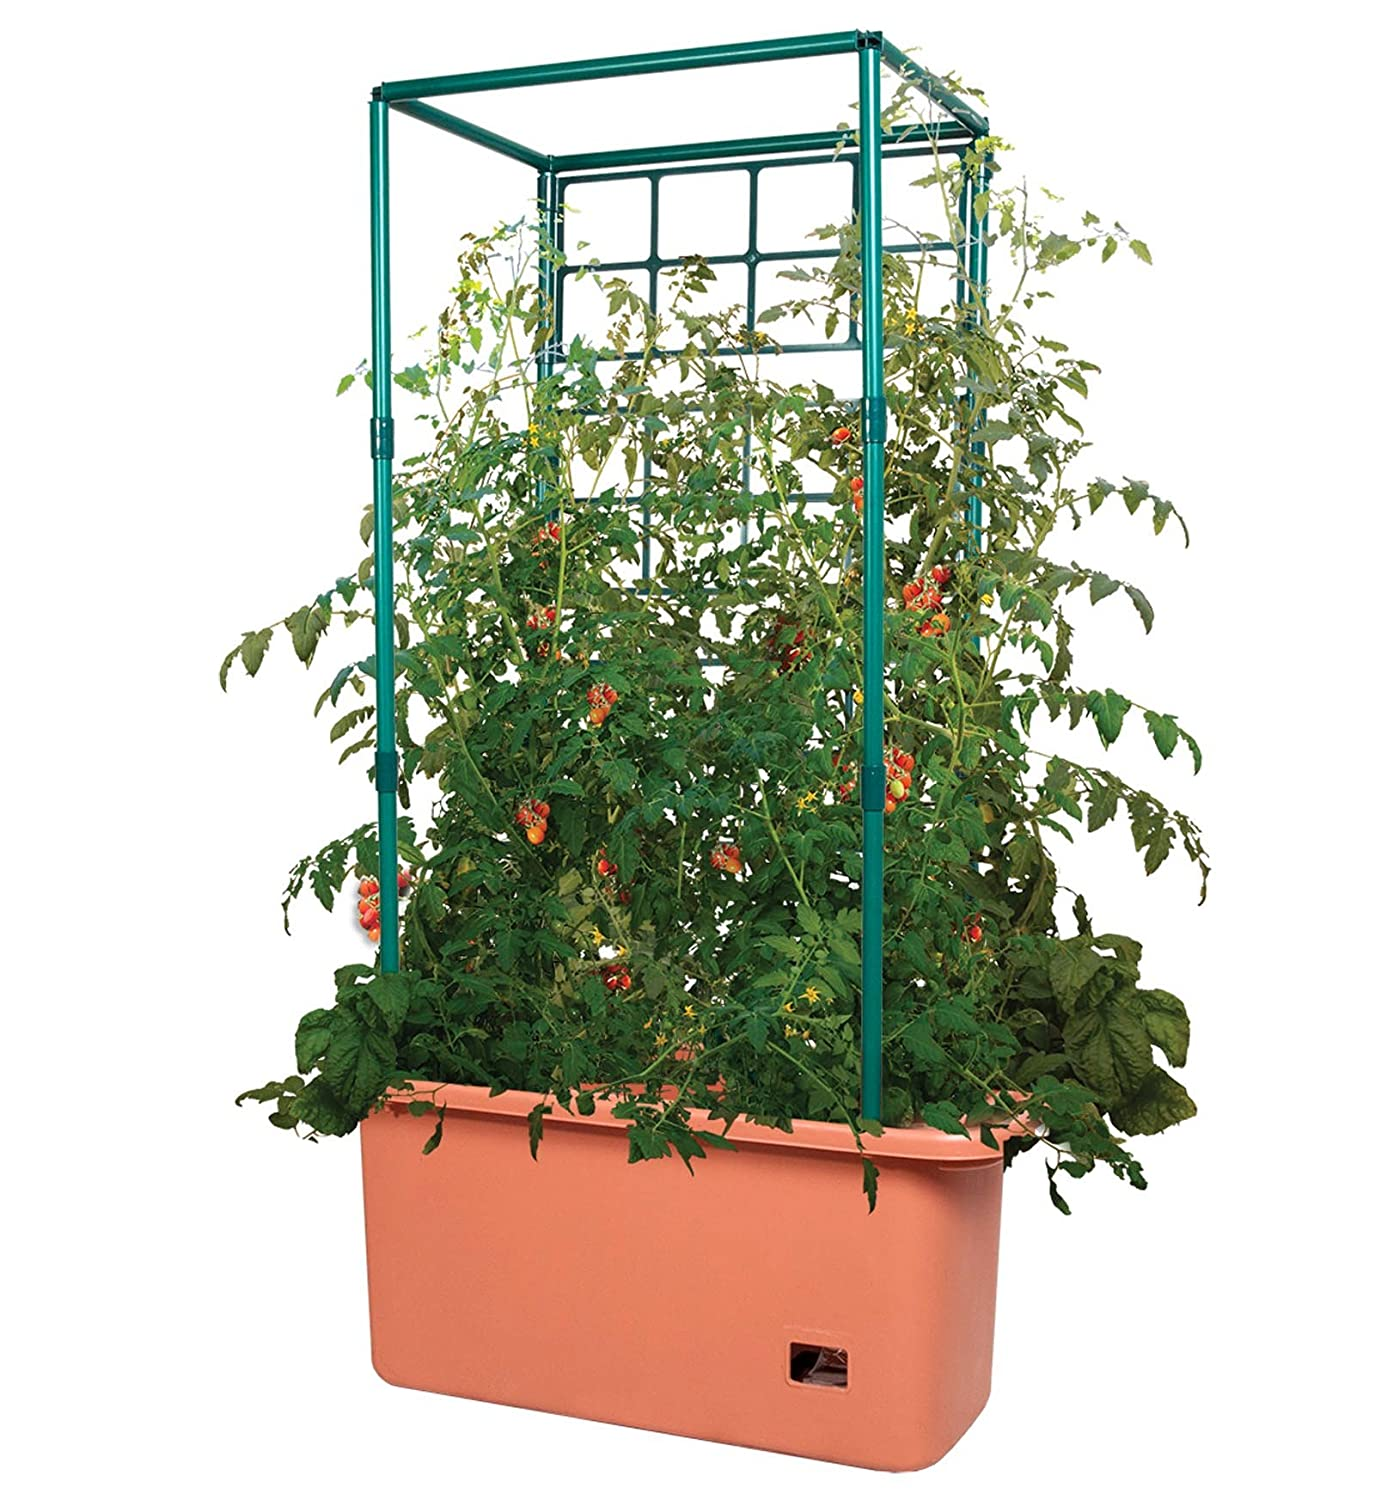 10 Gallon Hydroponic with Trellis on Wheels for grow cabbage in pots